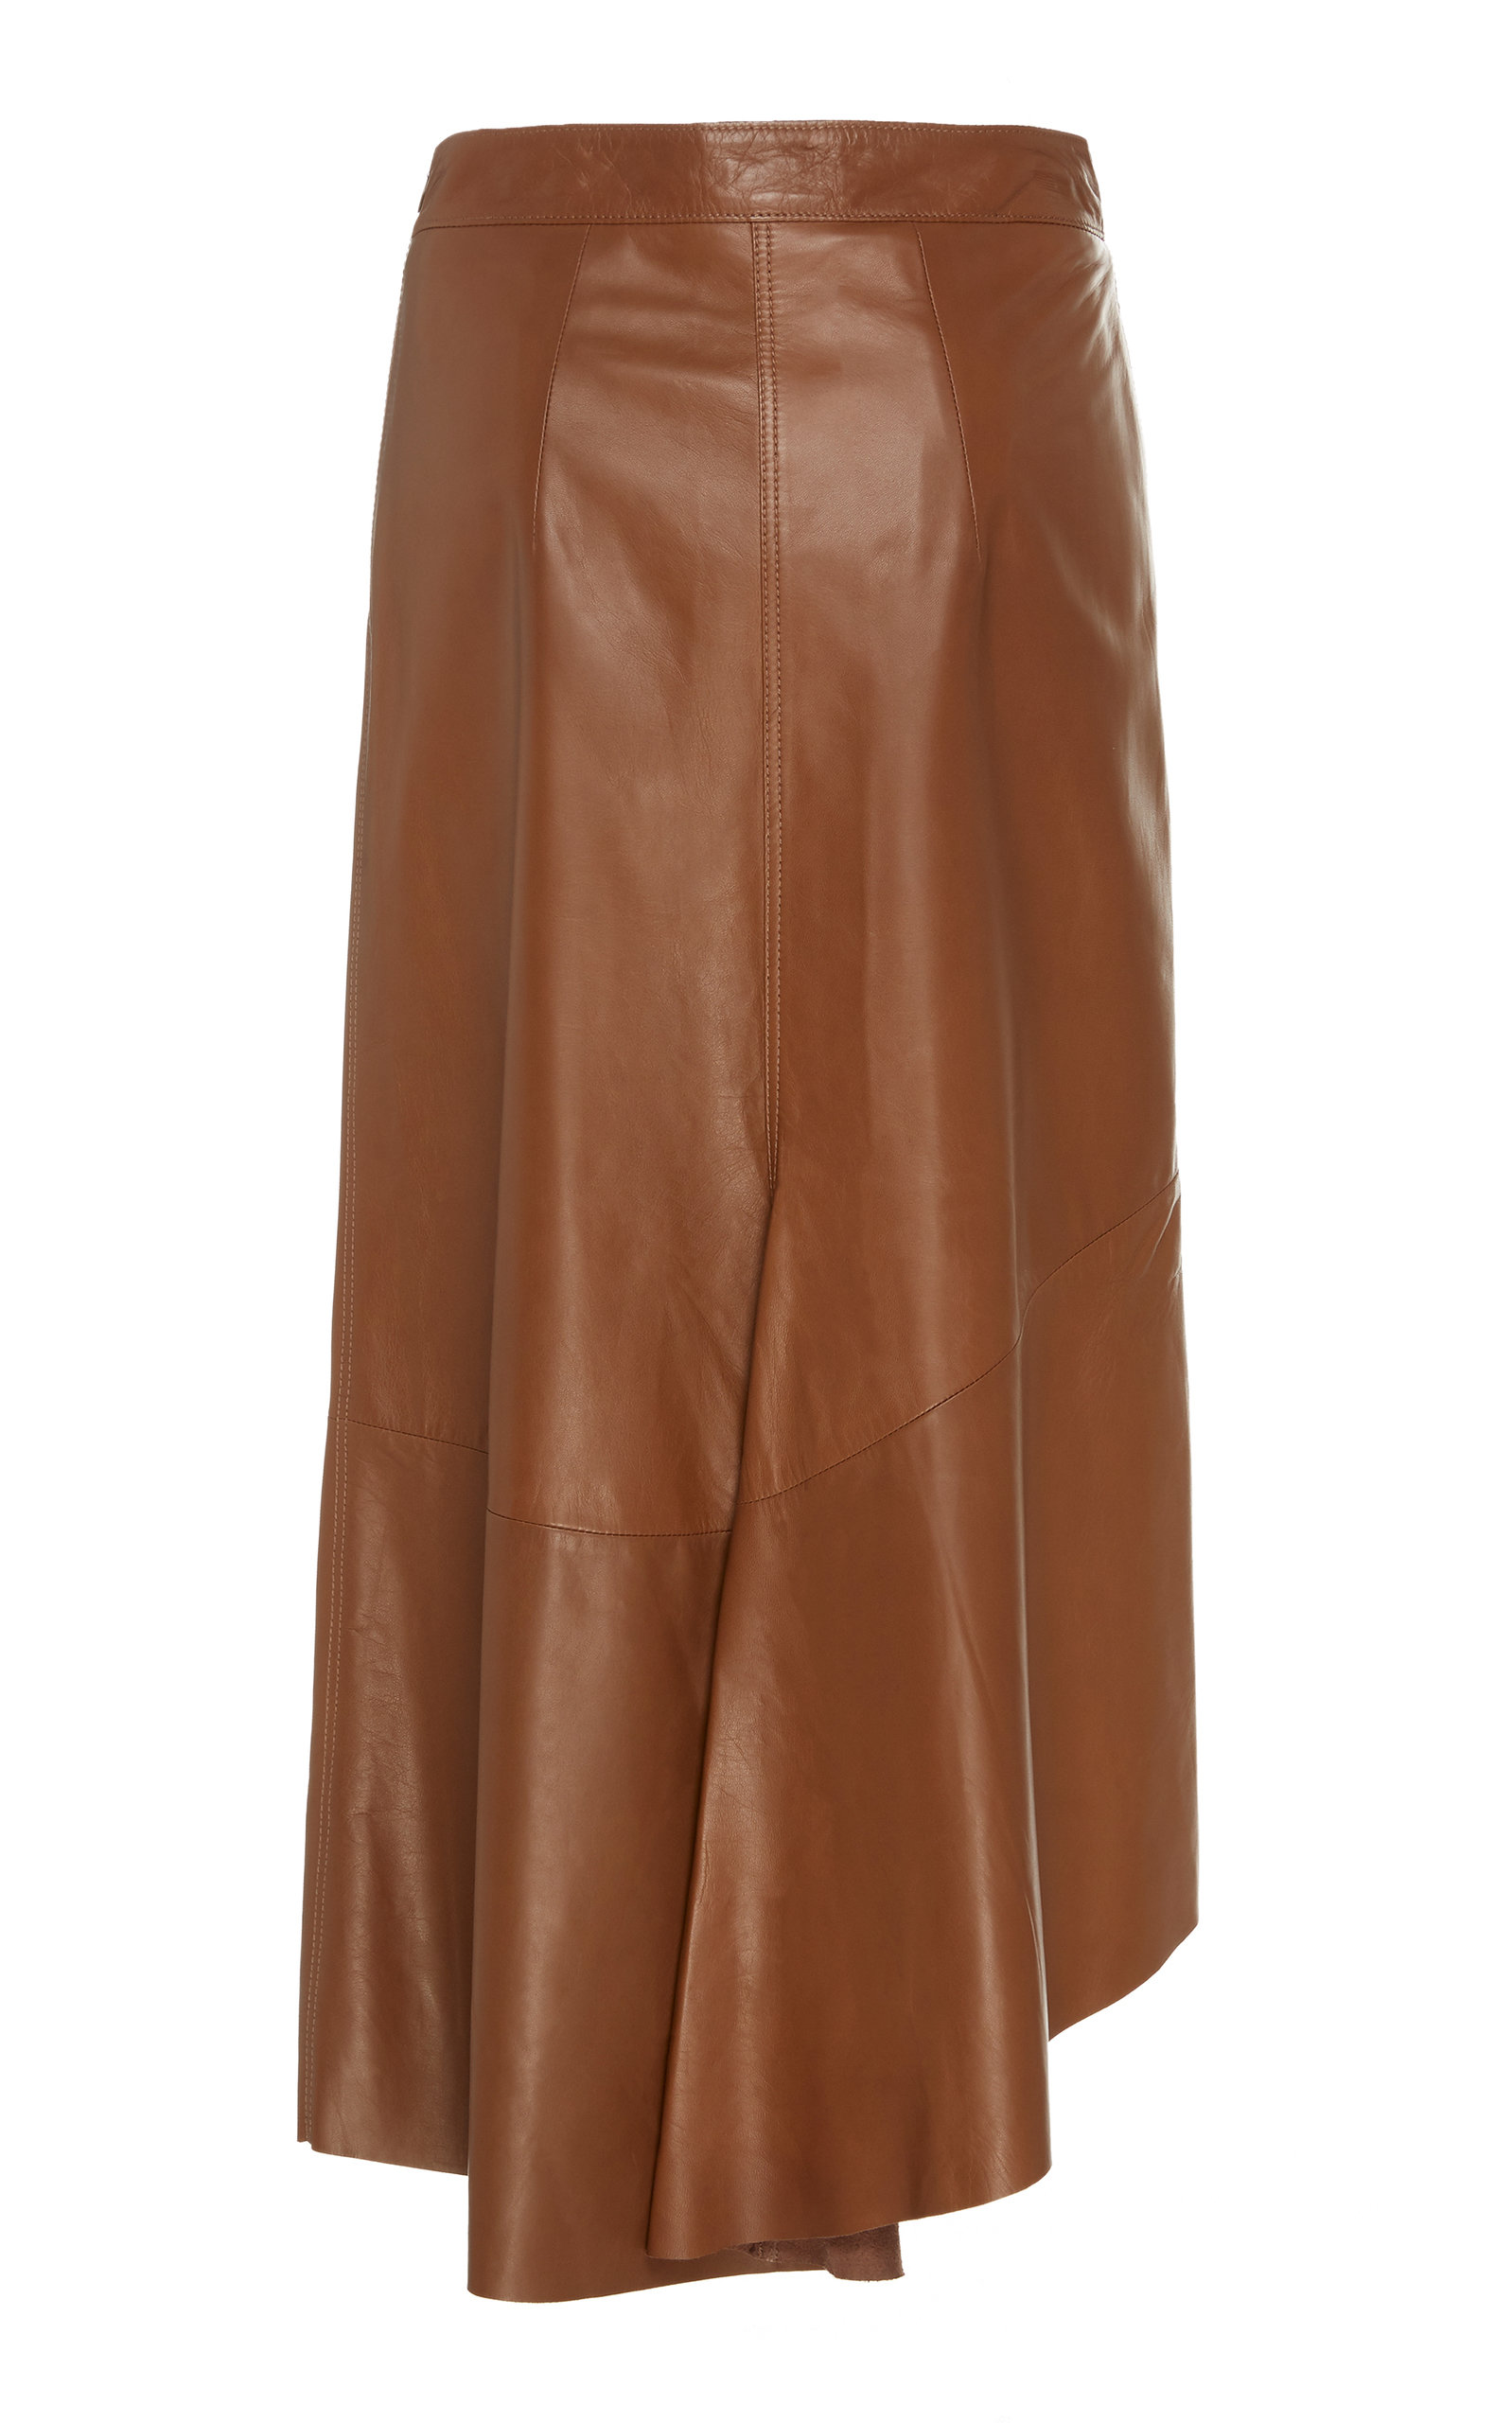 aaf86cee43 Brunello CucinelliHigh-Waisted Leather Midi Skirt. CLOSE. Loading. Loading